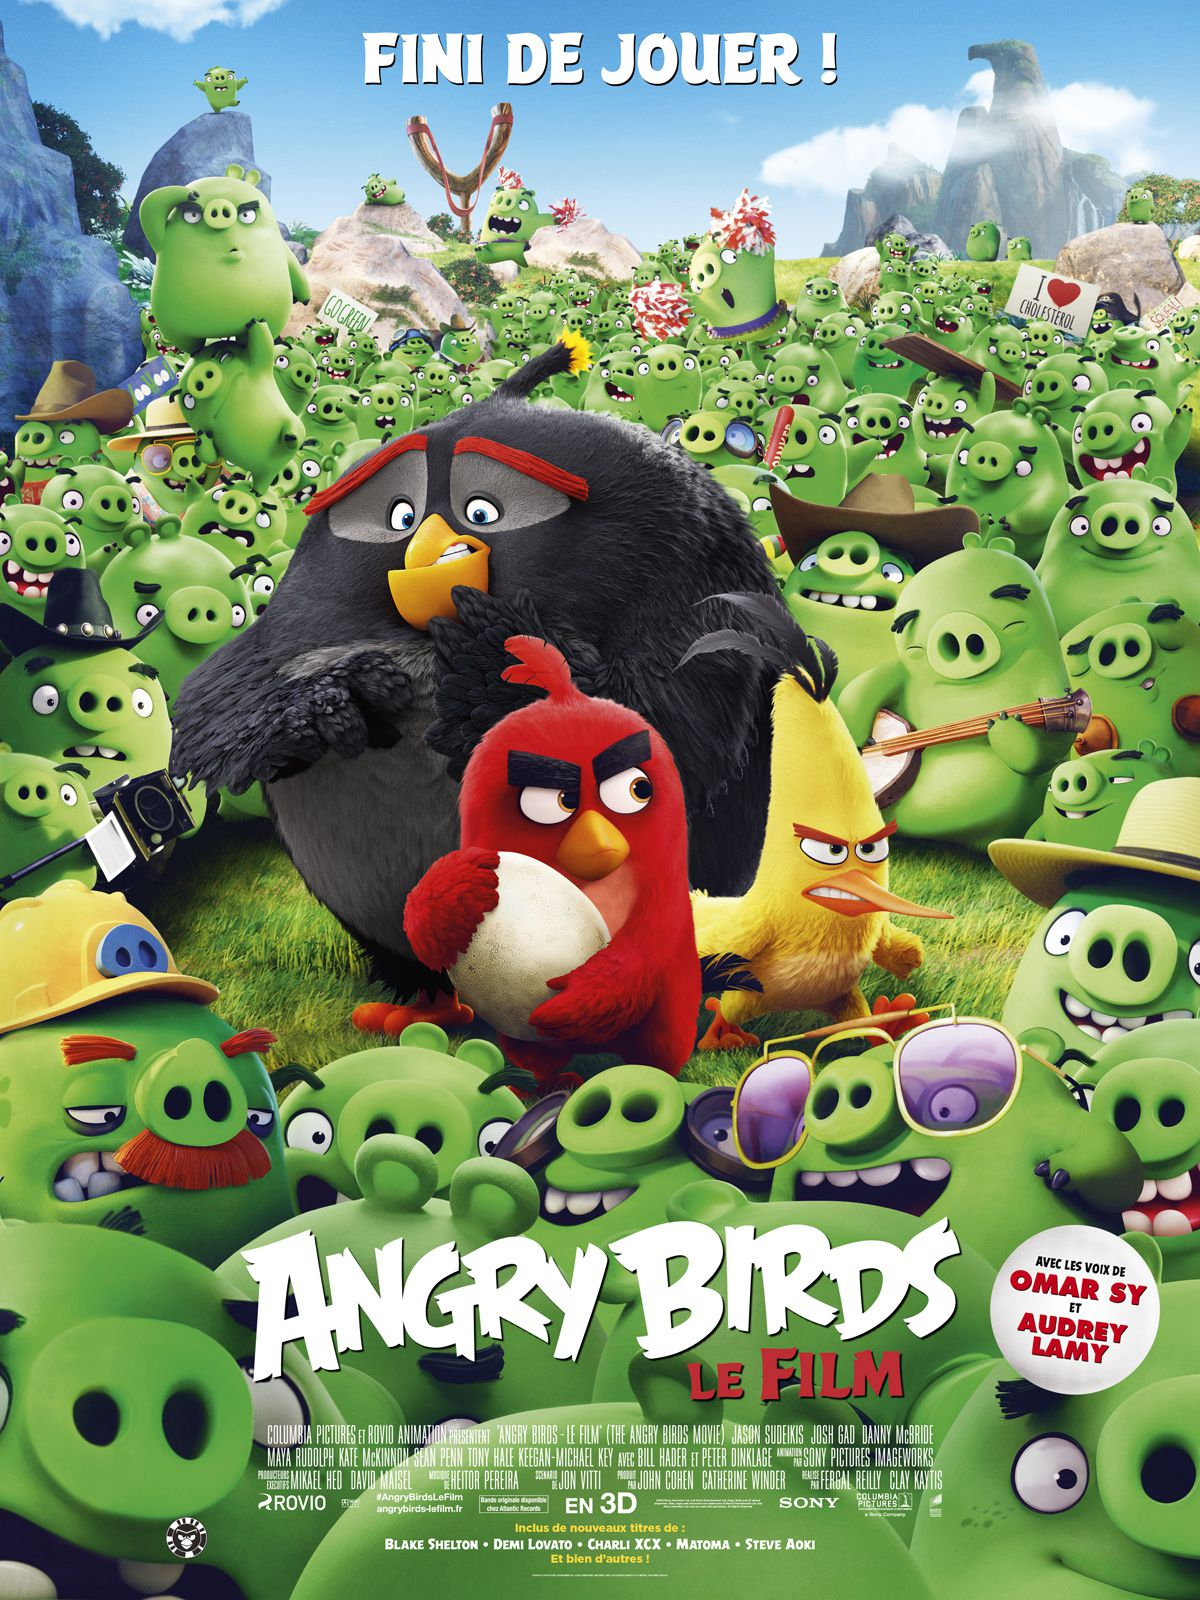 Angry Birds, le film - Long-métrage d'animation (2016) streaming VF gratuit complet